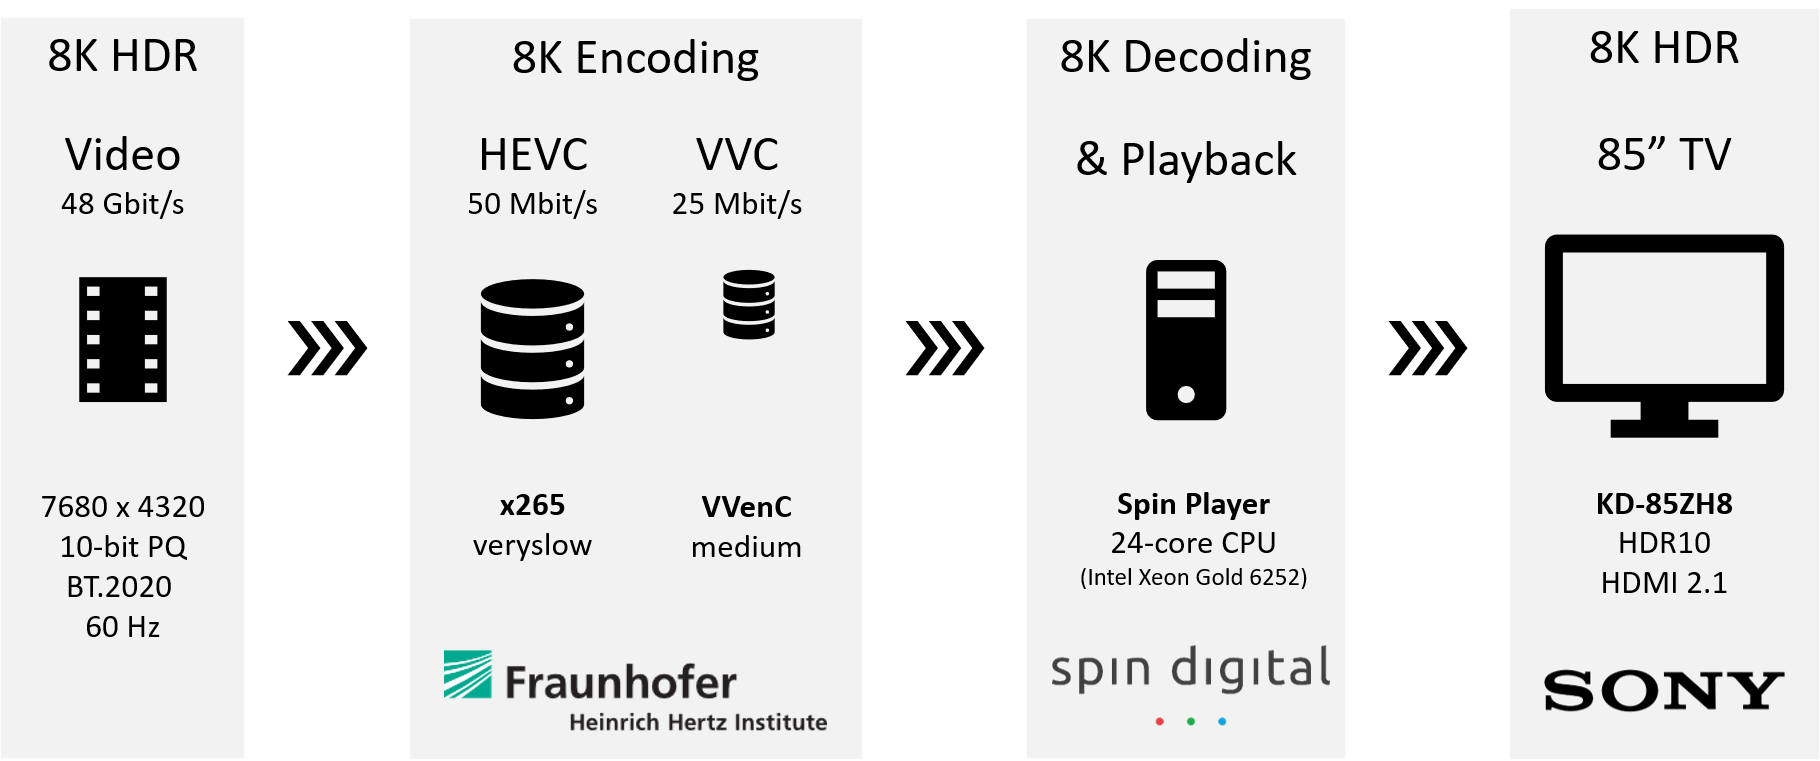 8K HDR encoding and playback demonstration using VVC